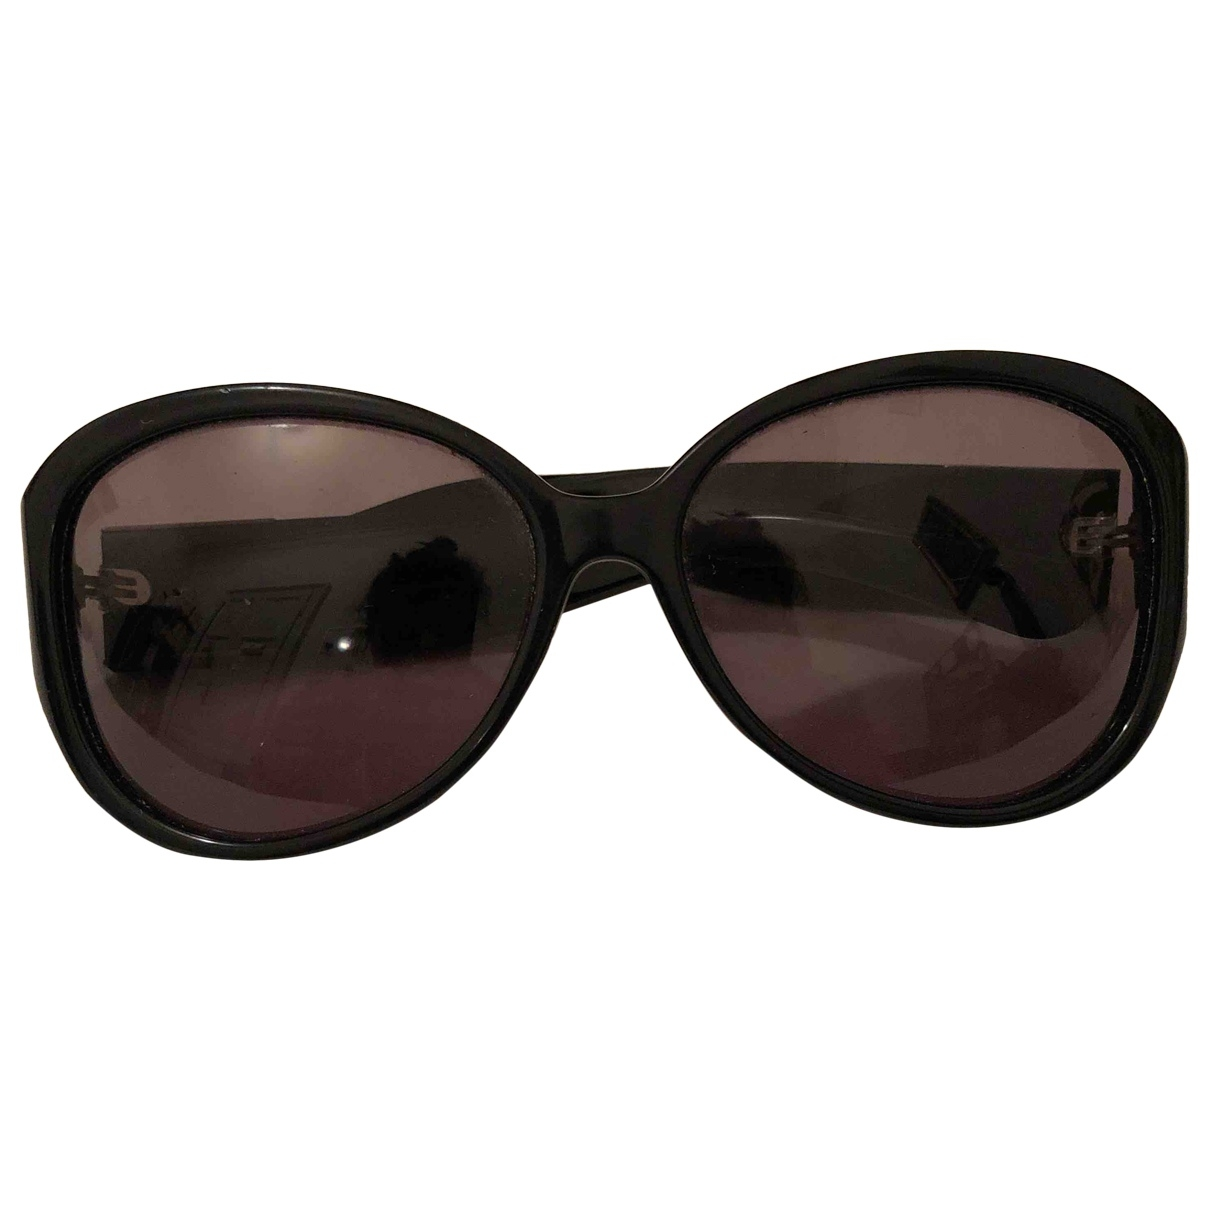 Bottega Veneta \N Black Sunglasses for Women \N